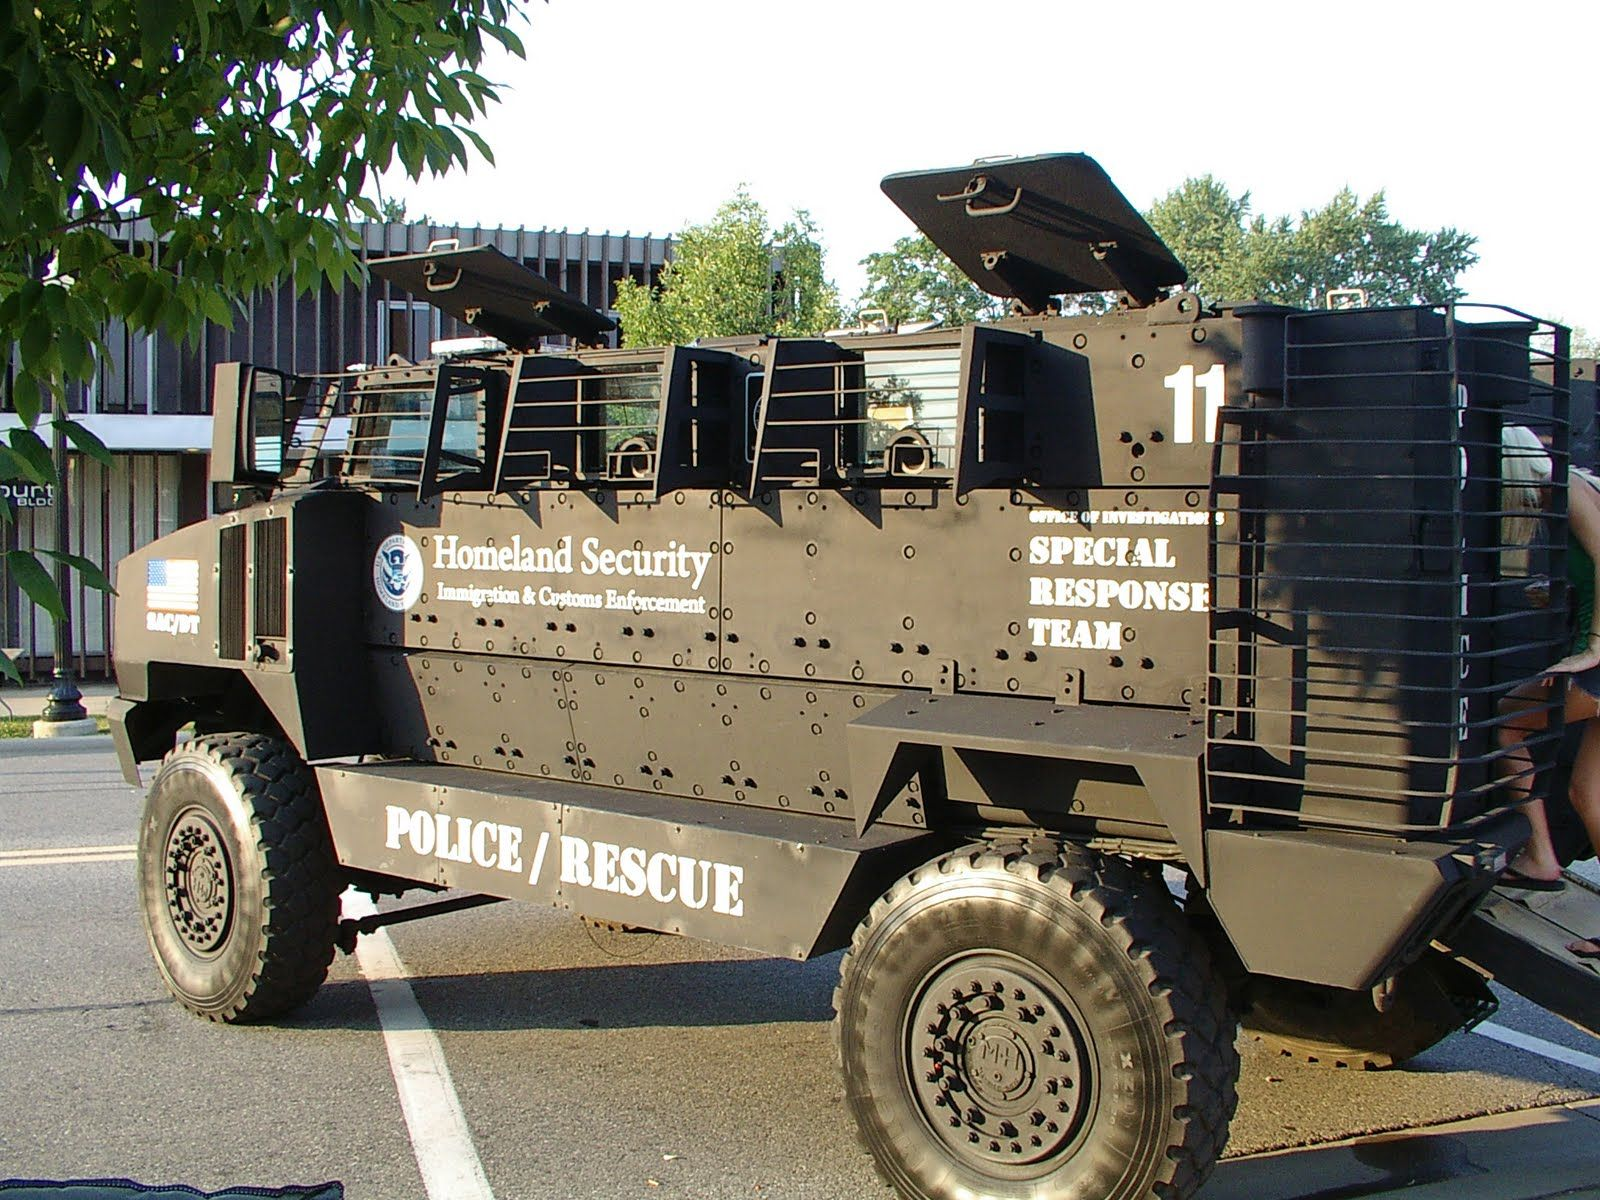 Mainstream media asks why is dhs stockpiling ammo weapons and armored assault vehicles